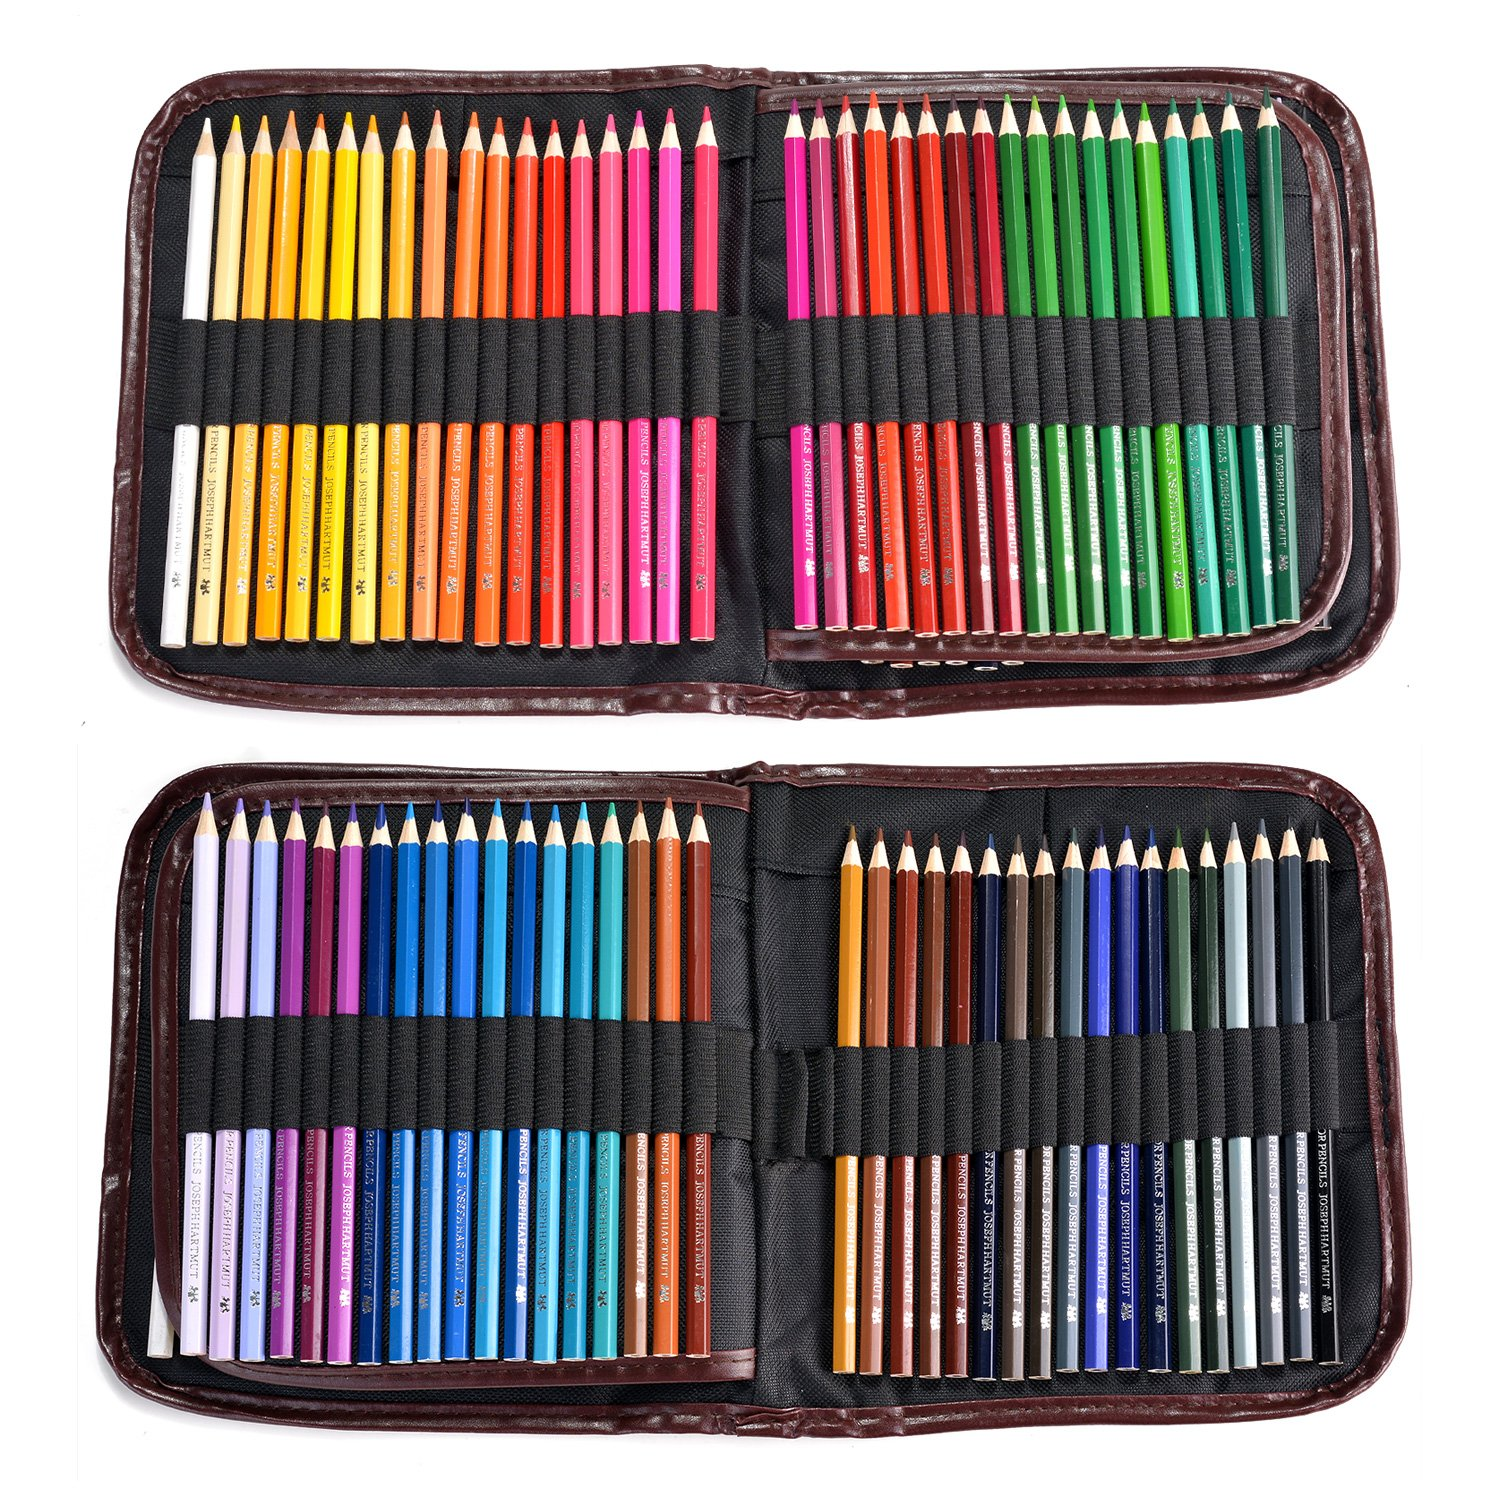 AGPtEK 72 PCS Colored Pencils Set with Foldable Bag, Fine Art Pre-Sharpened Drawing Pencils with 72 Oil Based Assorted Colors & Anti-Fracture for Coloring Books Drawing Writing Sketching Doodling